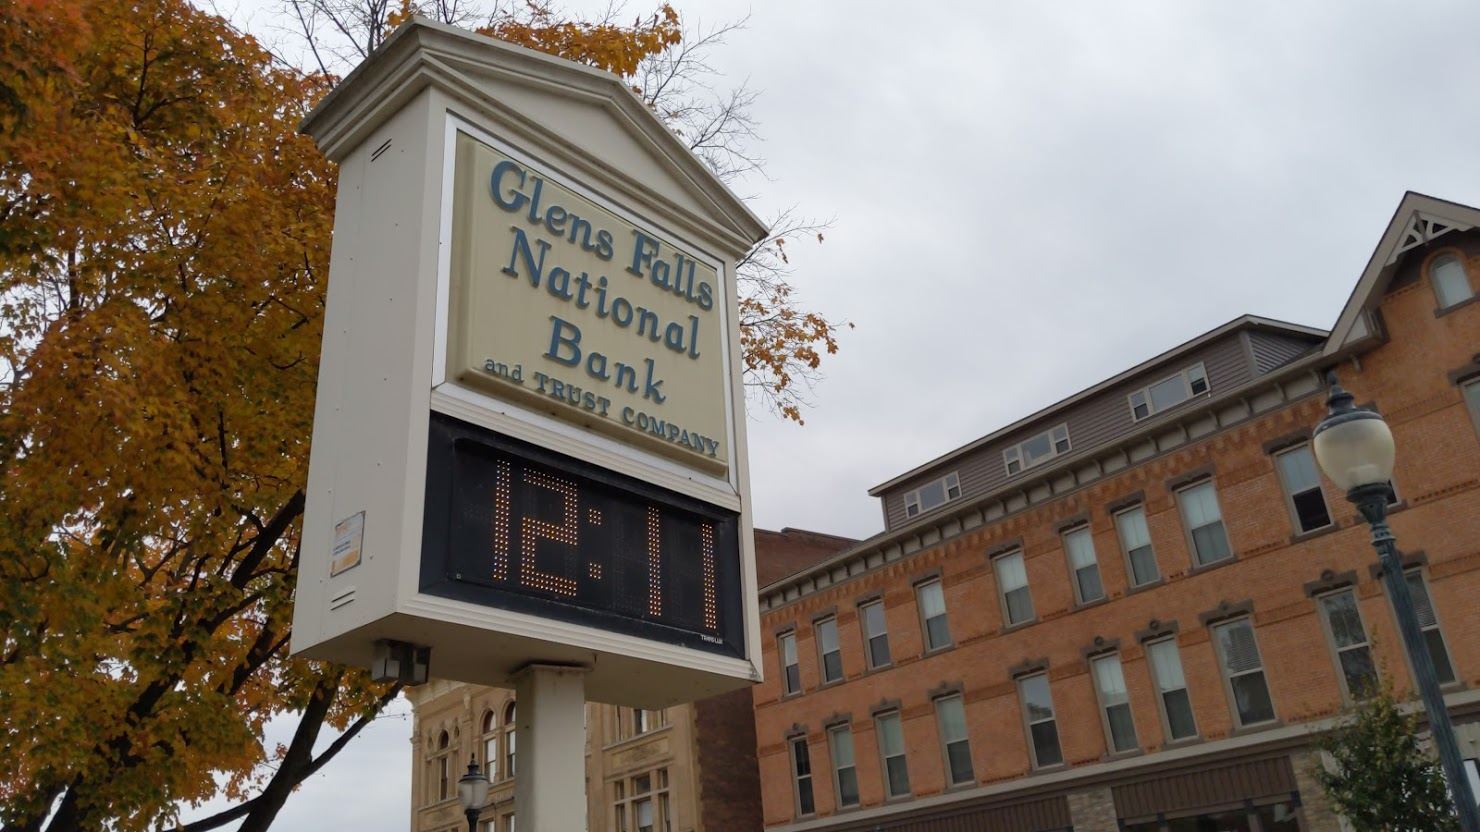 glens falls national bank sign